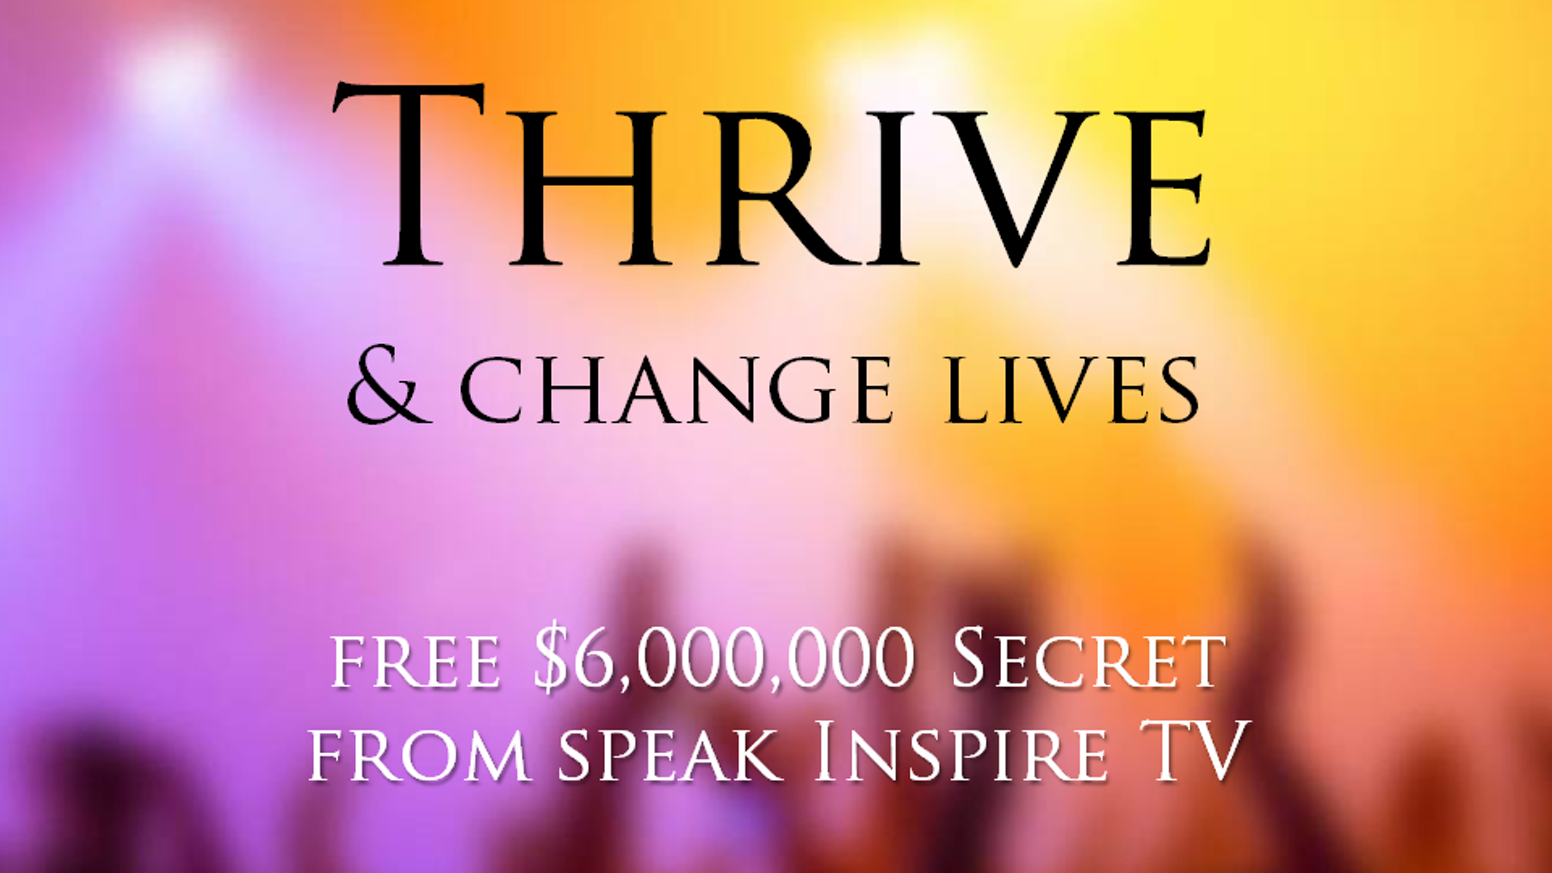 Prosper by Inspiring Kindness.Thrive. Change Lives. Get High-Paying Speaking Gigs. Join Speak Inspire TV.Live Your Dreams, Inspire Your World.